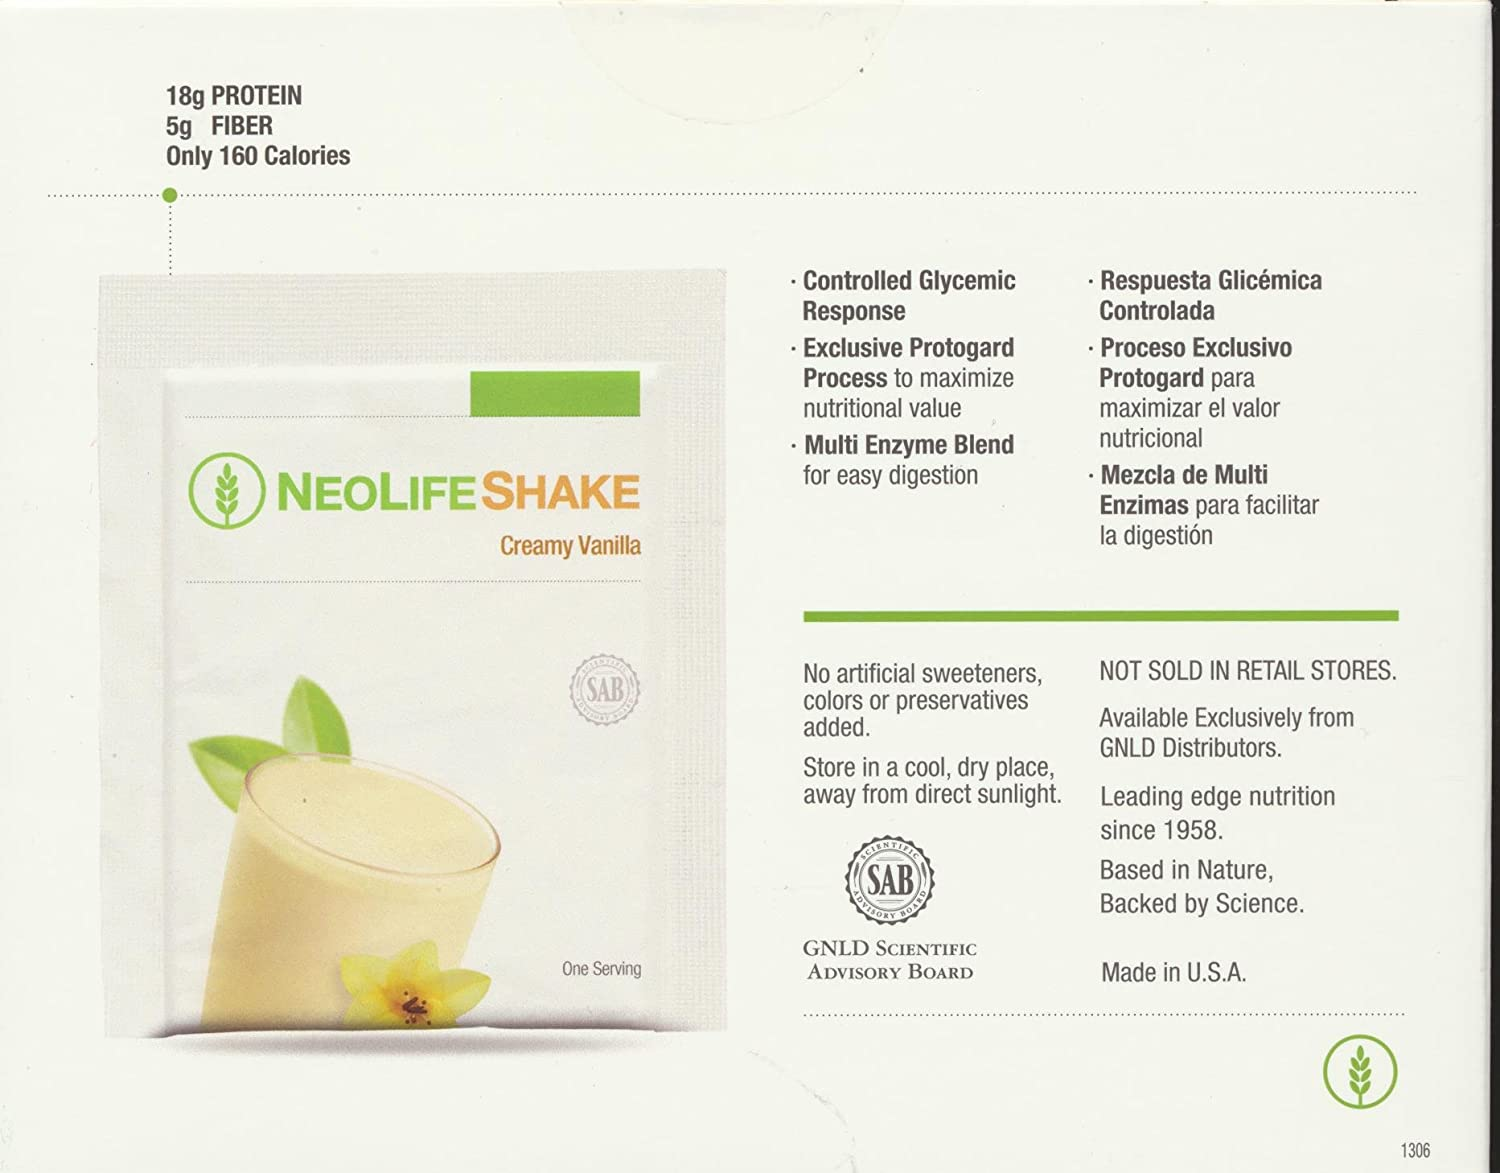 Amazon.com: Neolifeshake Creamy Vanilla Box of 15 Packets: Health ...